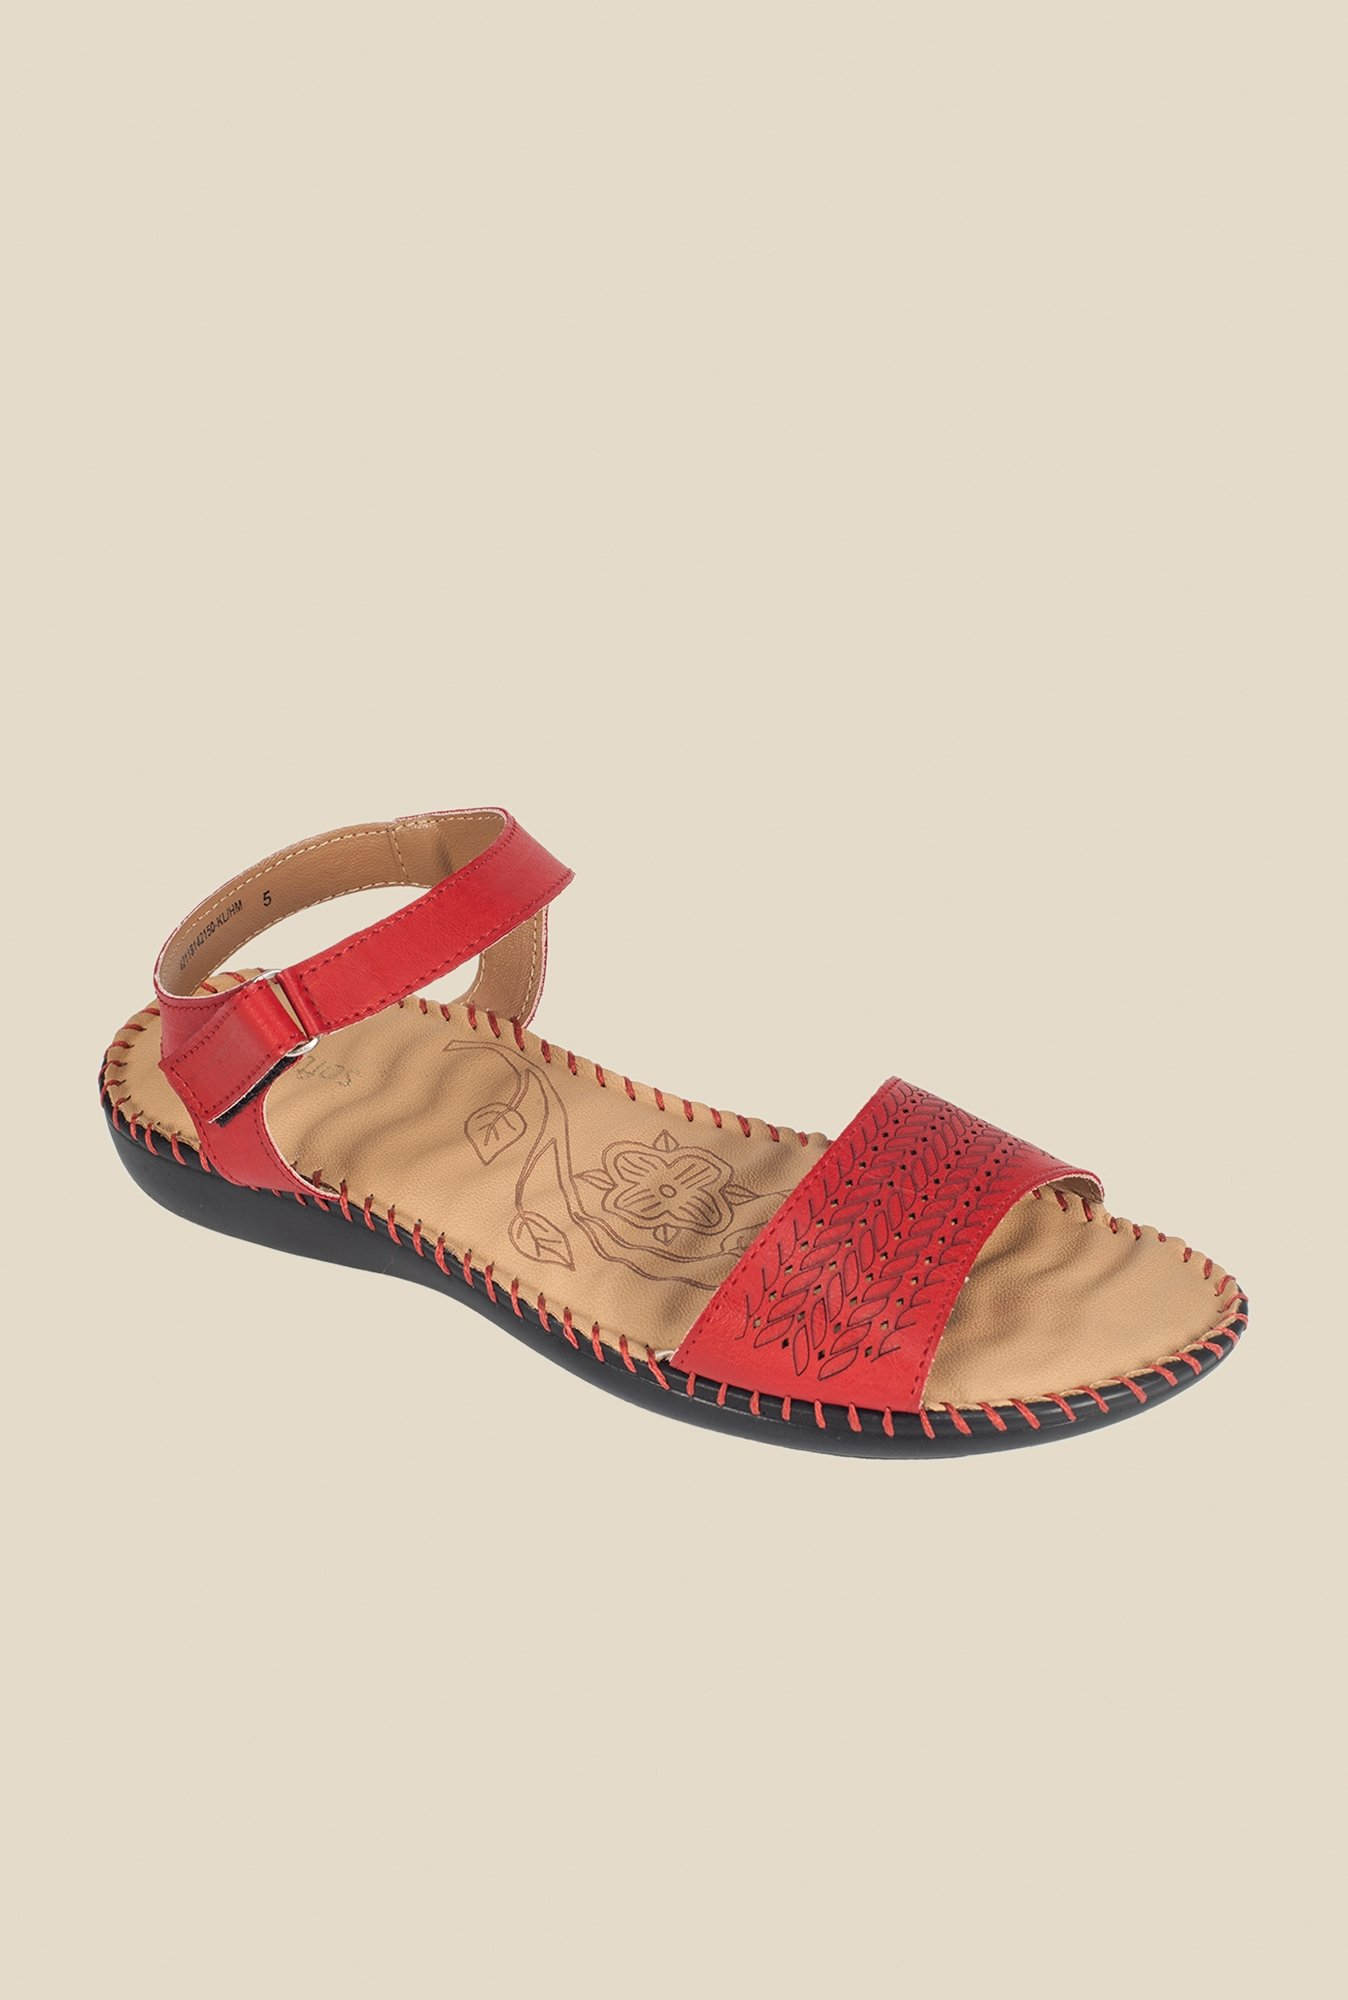 Khadim's Red Ankle Strap Sandals